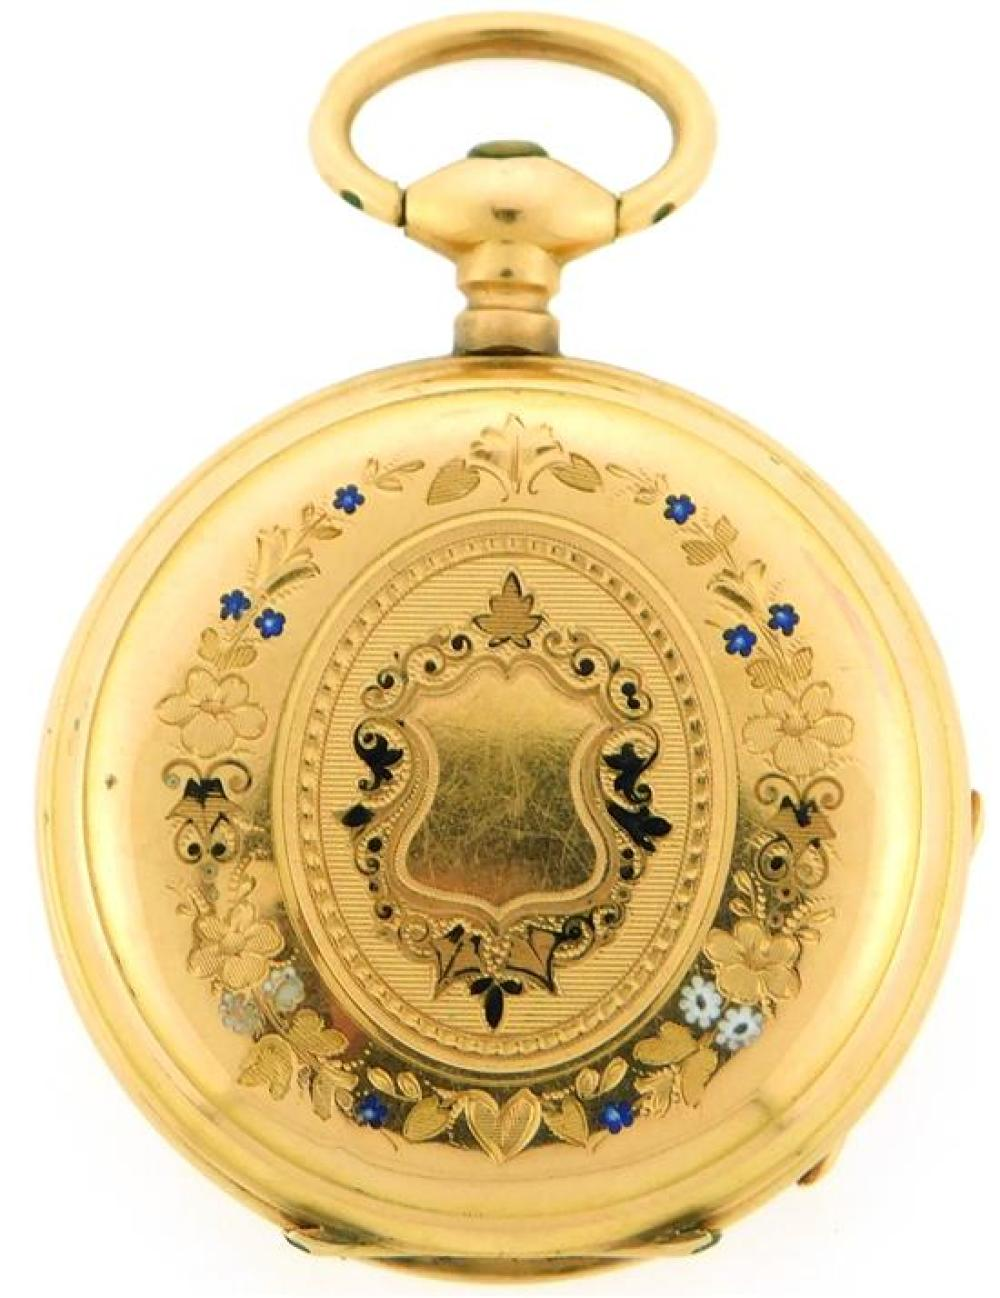 JEWELRY: 18K Pendant Watch with Enamel, open face pendant watch with dustcover: tested 18K yellow gold, dust cover is engraved: